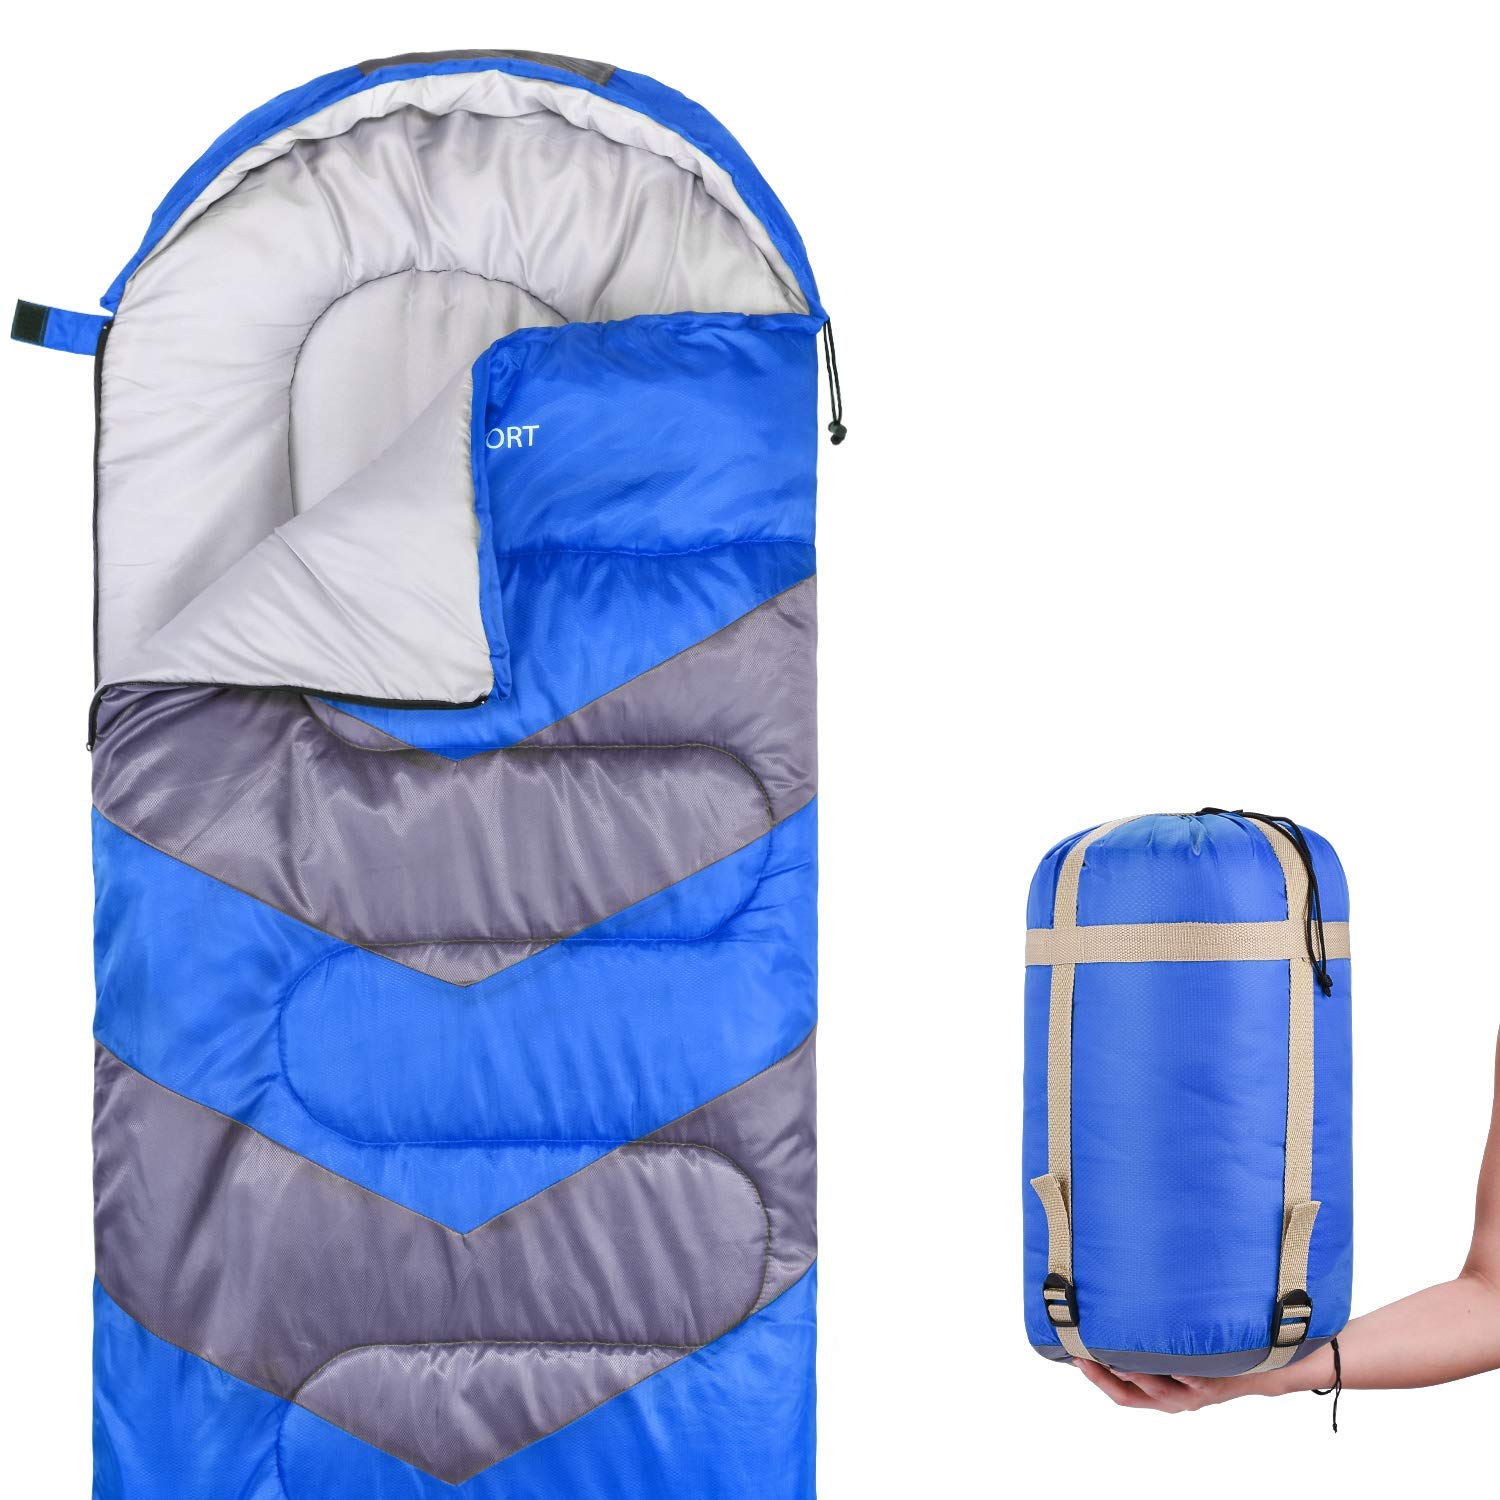 Abco Tech Sleeping Bag – Envelope Lightweight Portable, Waterproof, Comfort with Compression Sack - Great for 4 Season Traveling, Camping, Hiking, Outdoor Activities & Boys. (Single) (Blue) [並行輸入品] B07R3Y5W7M